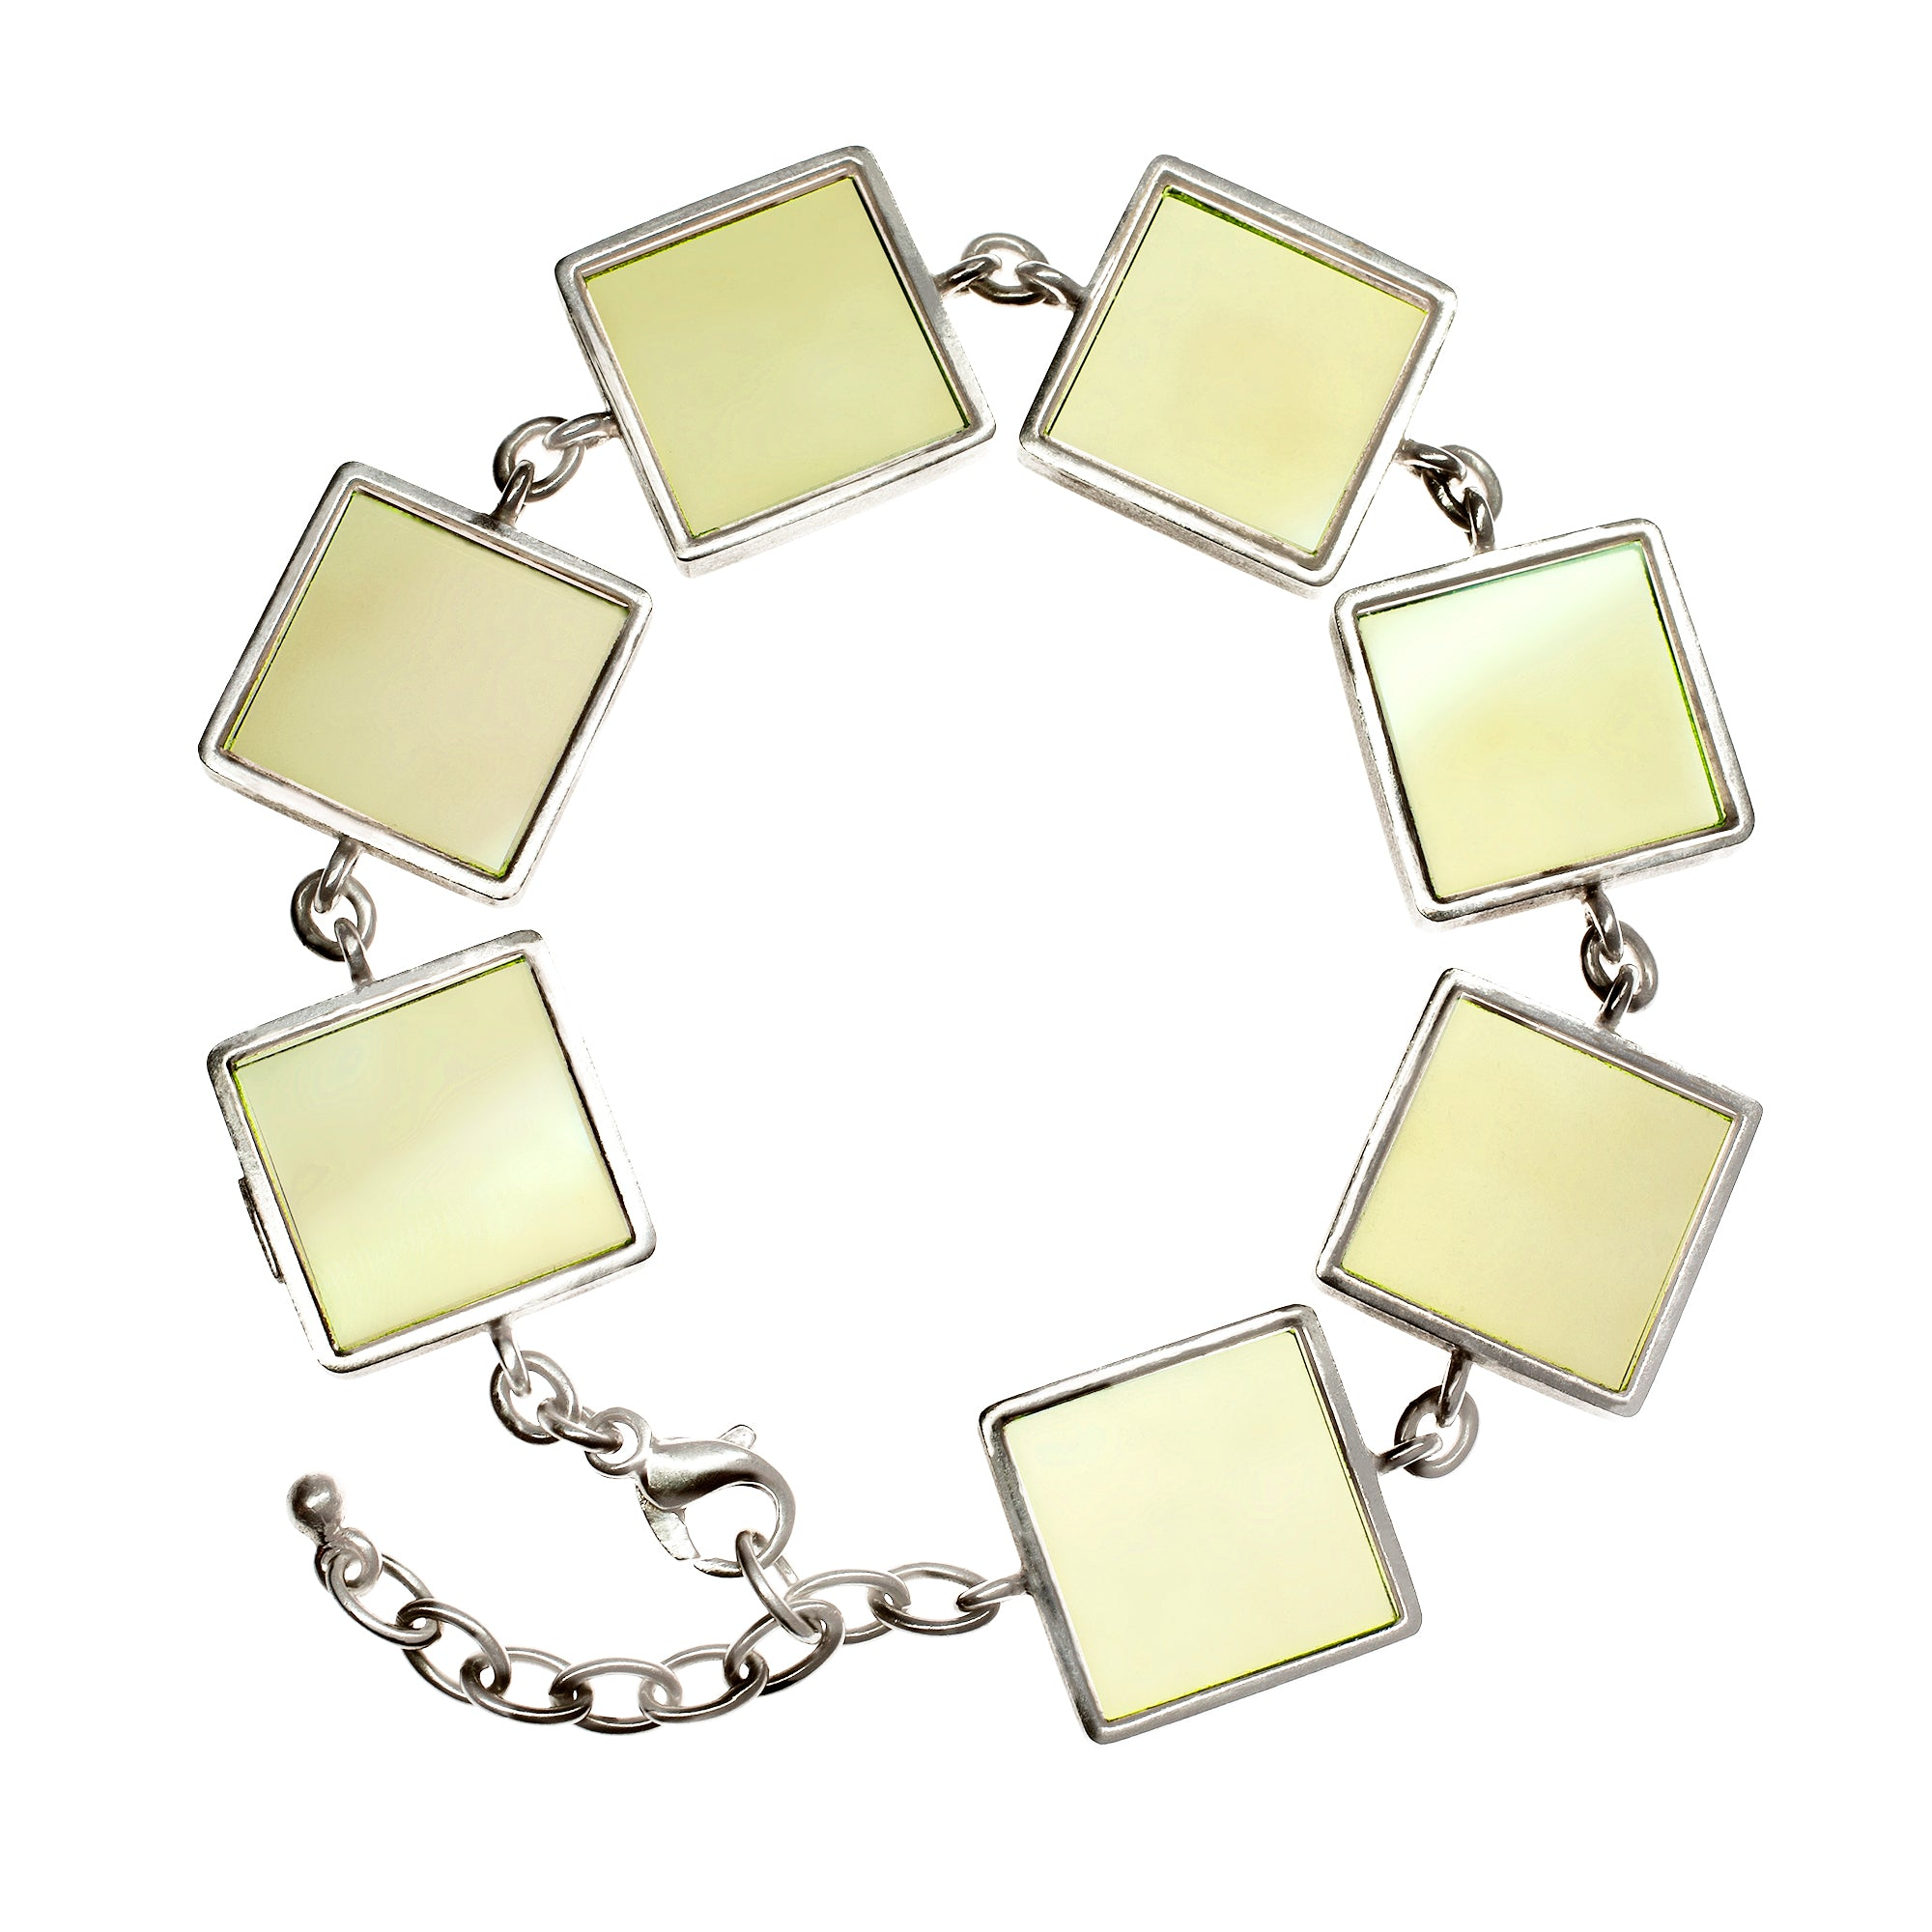 Sterling Silver Art Deco Bracelet with Lemon Quartzes, Featured in Vogue